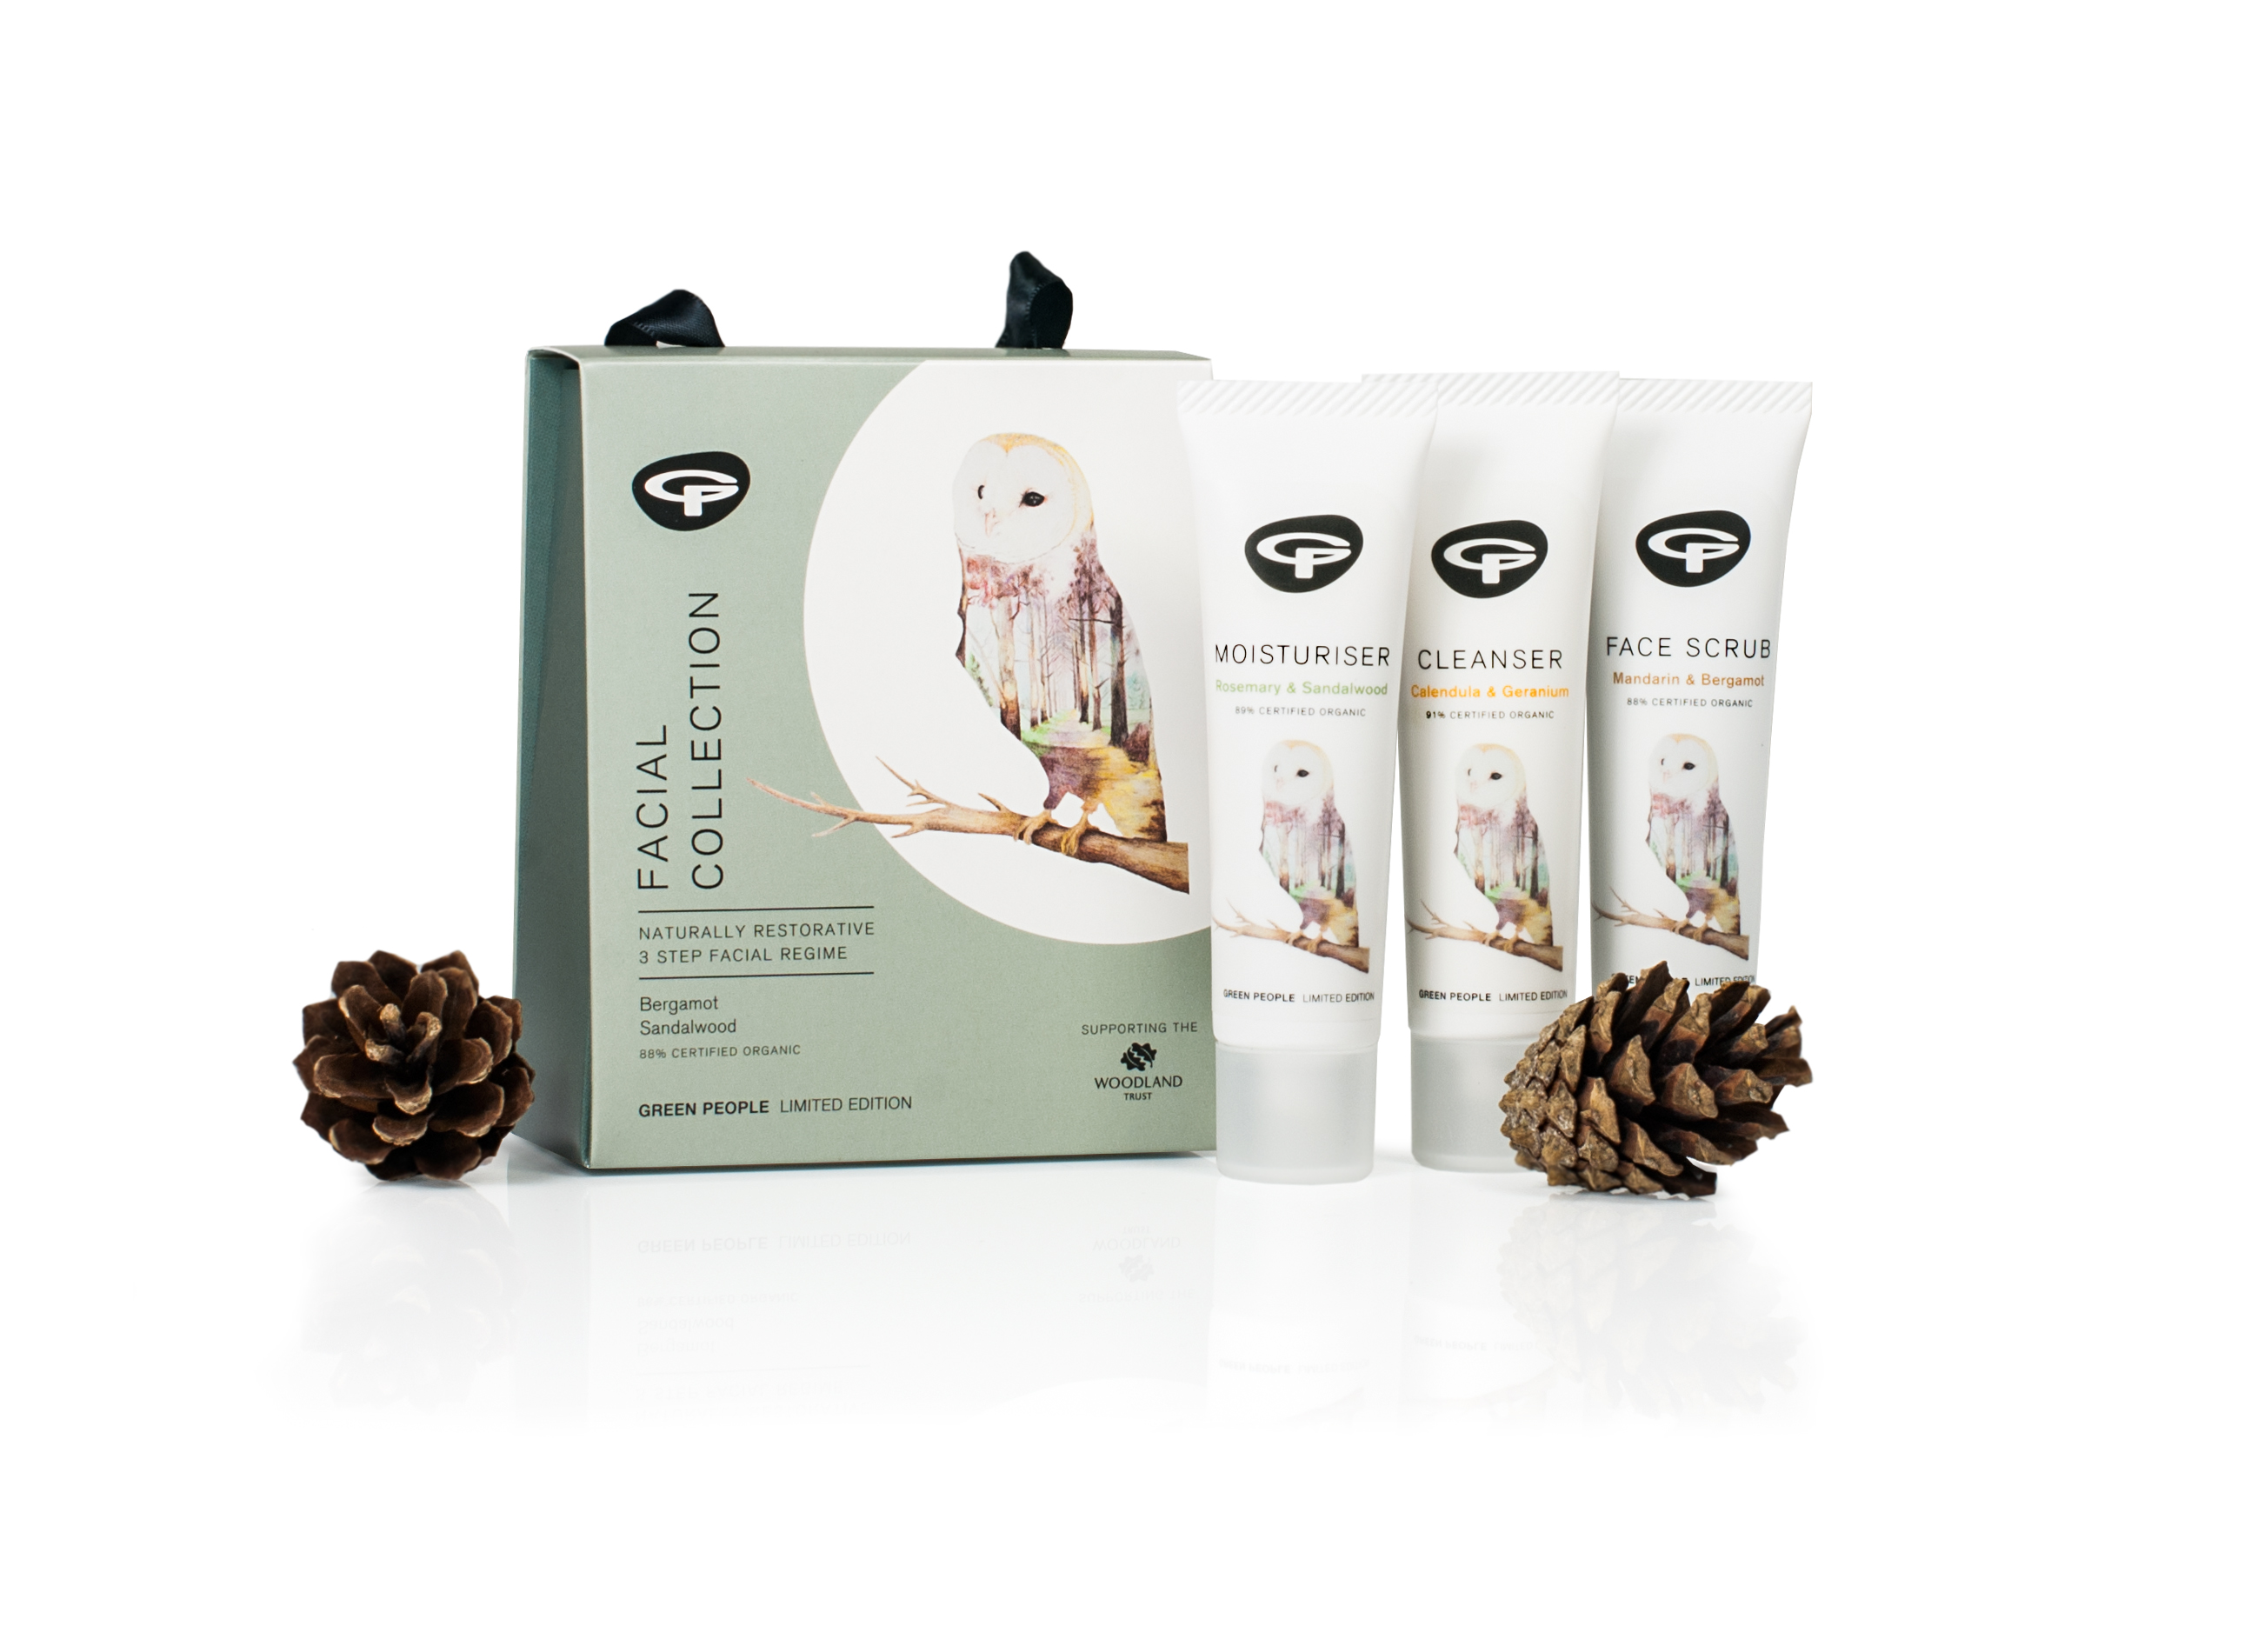 Green People woodland trust limited edition facial care